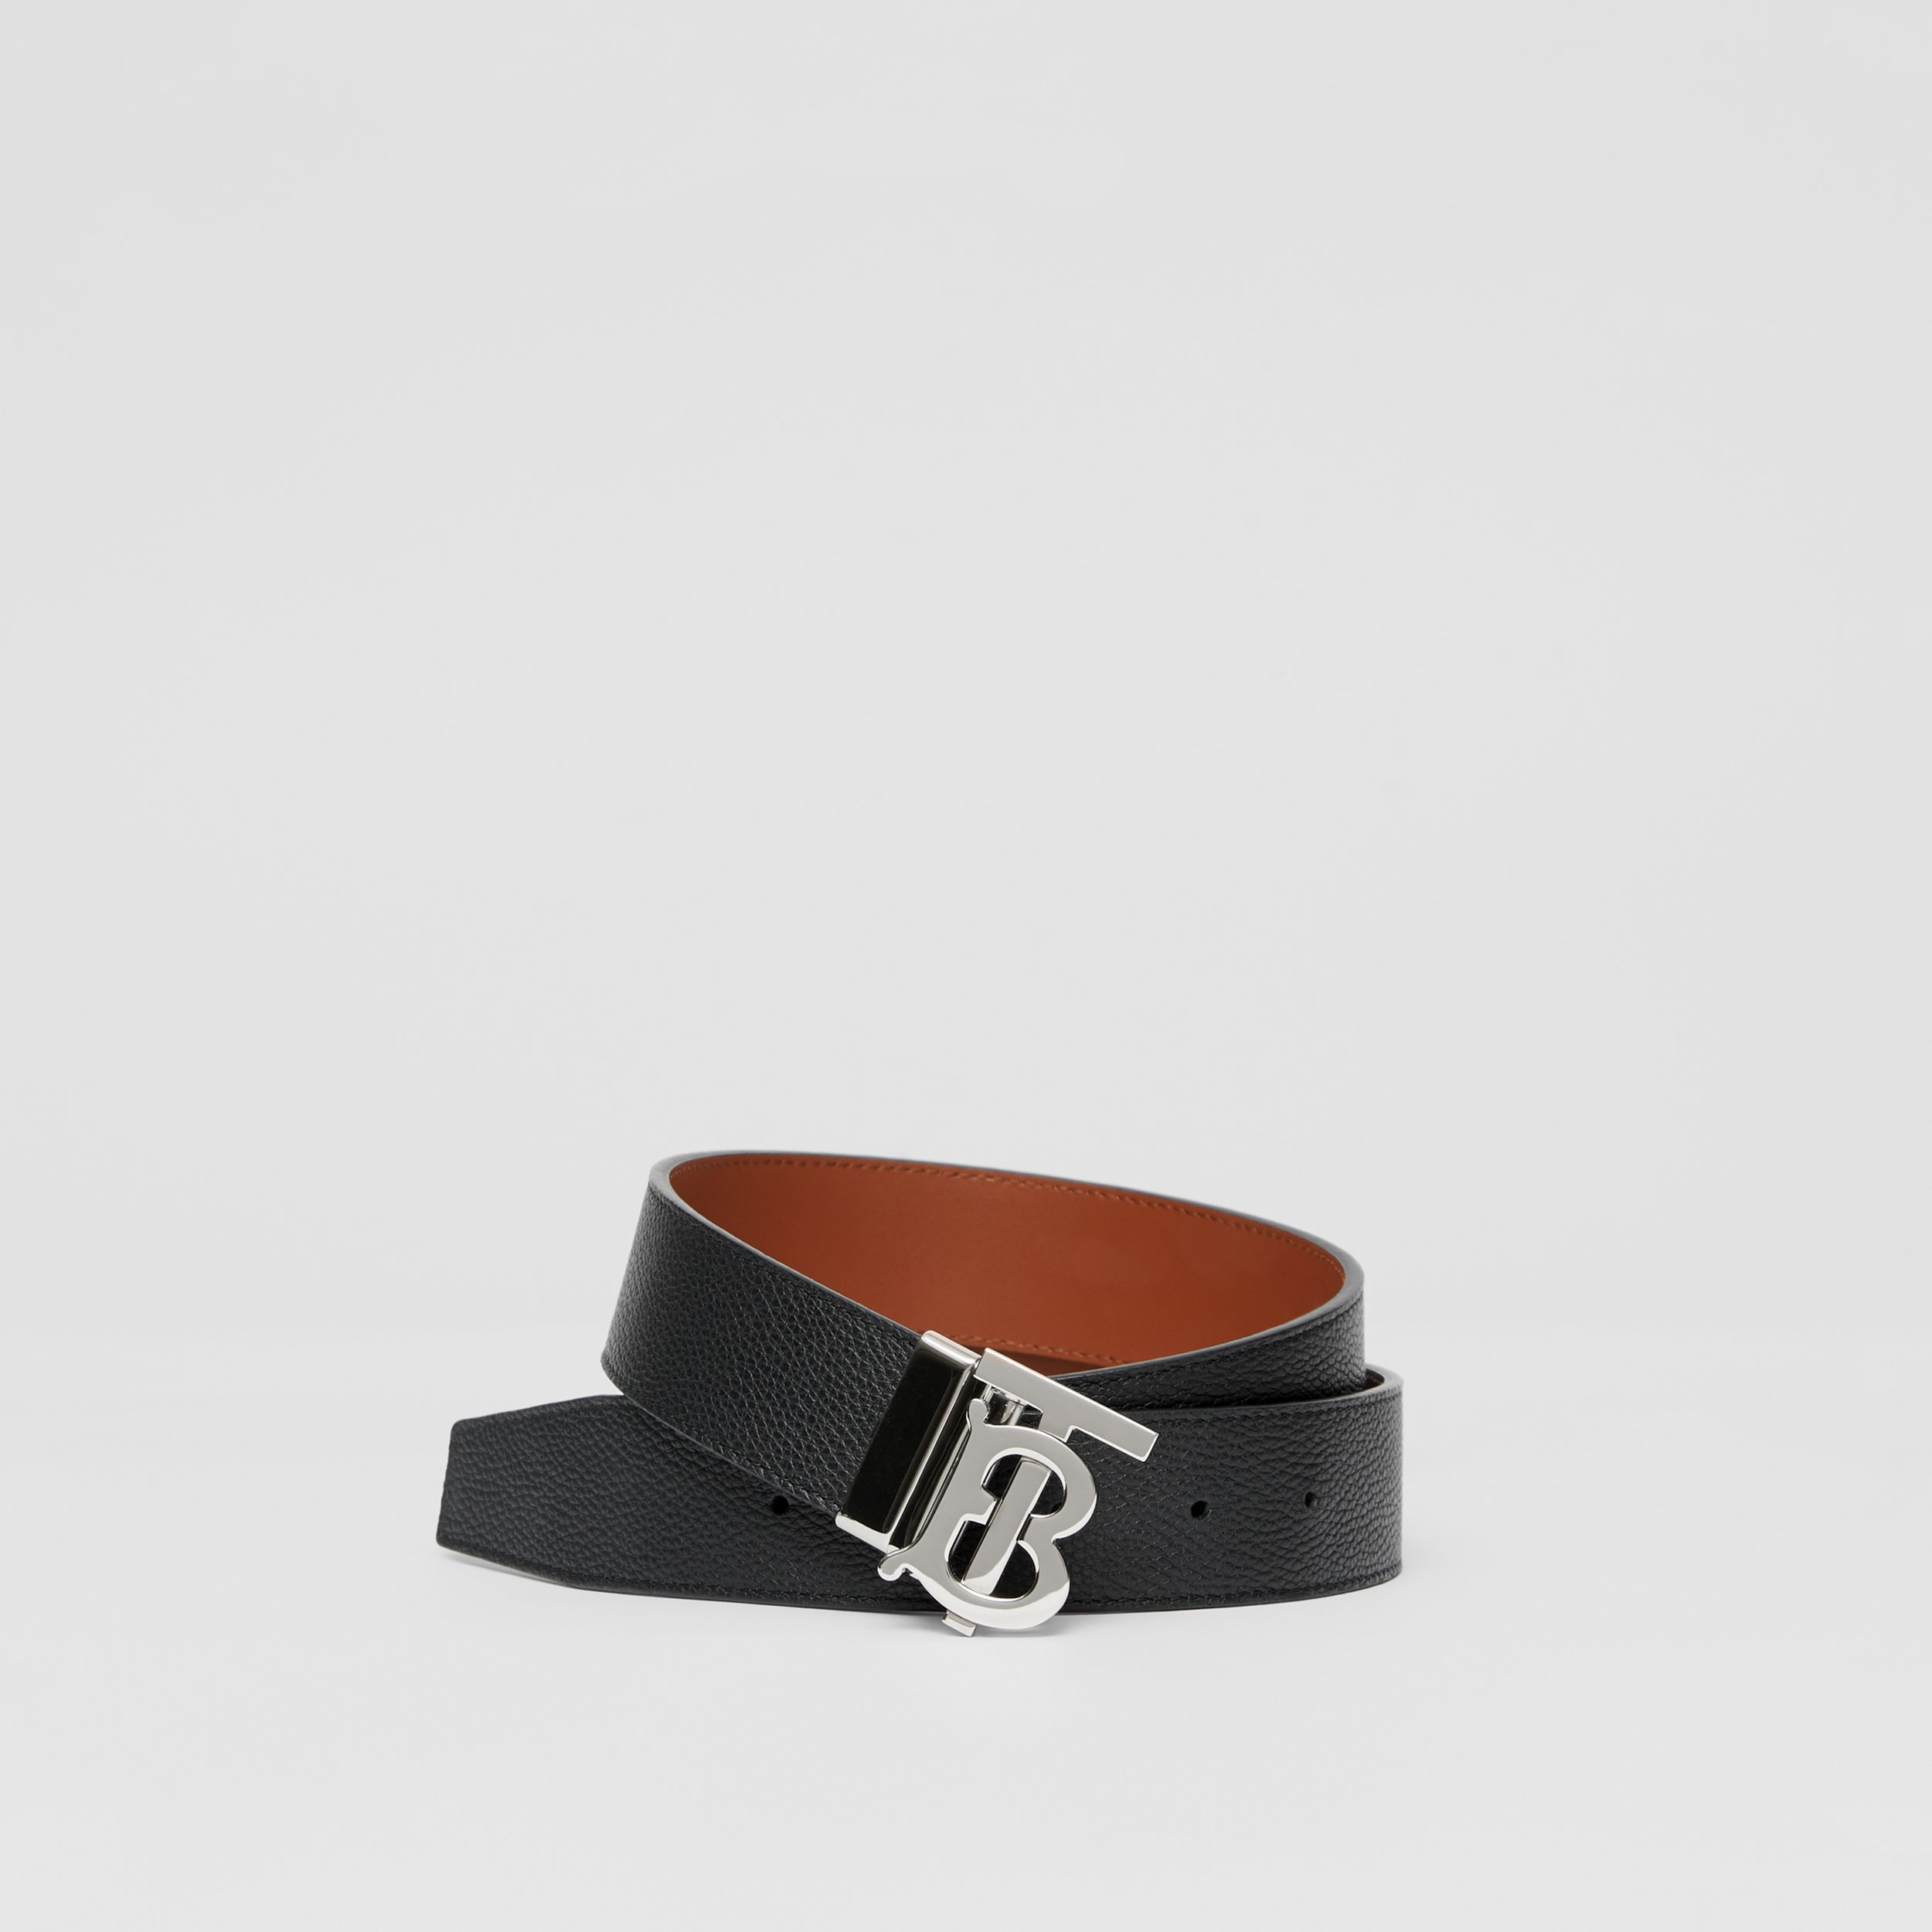 Reversible Monogram Motif Leather Belt in Black/tan - Men | Burberry United Kingdom - 1